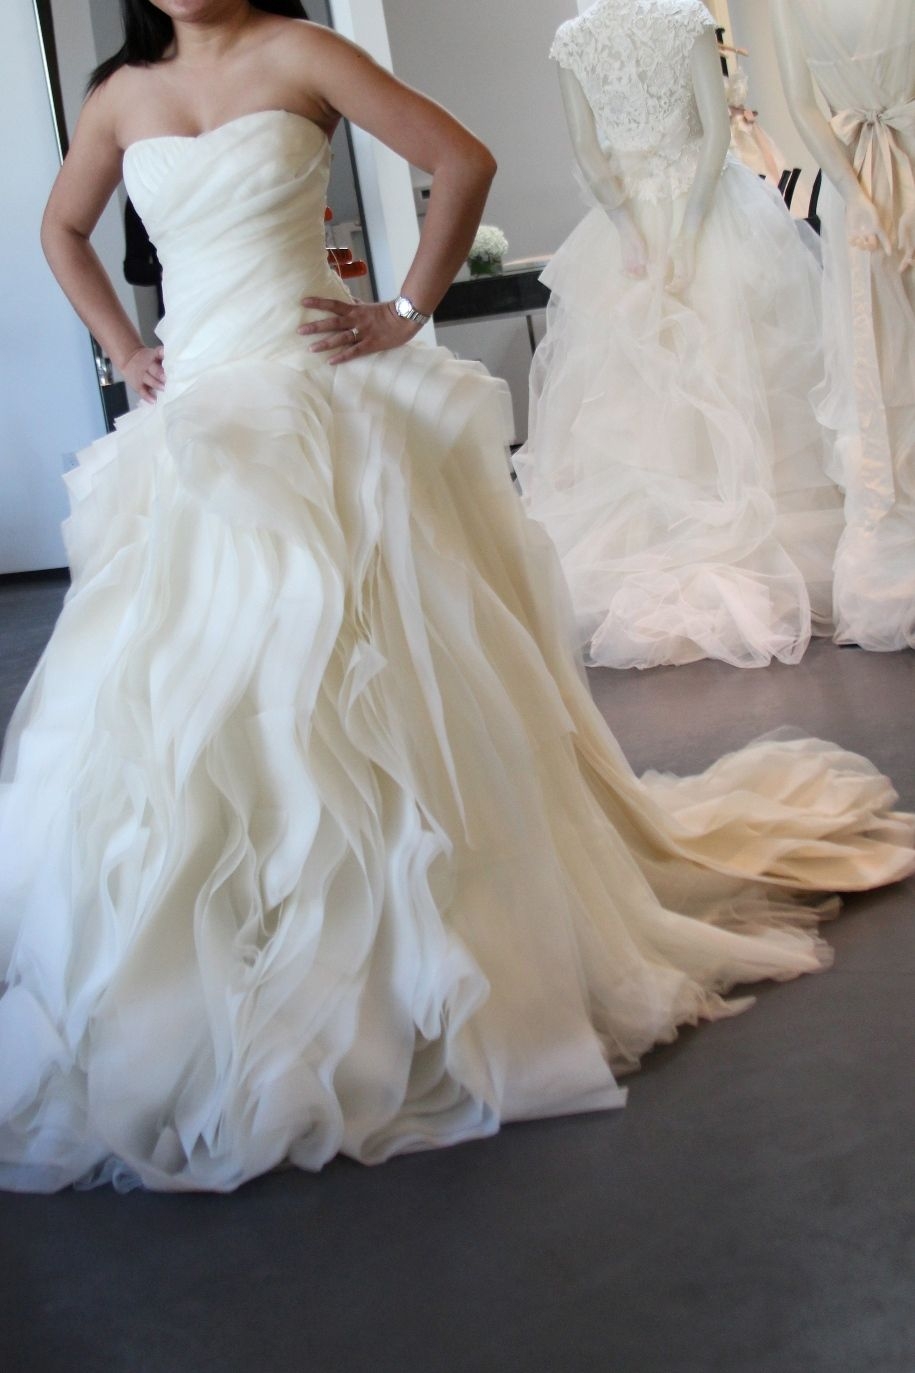 Vera wang diana dress my dream wedding gown i would wear for Average price of vera wang wedding dress